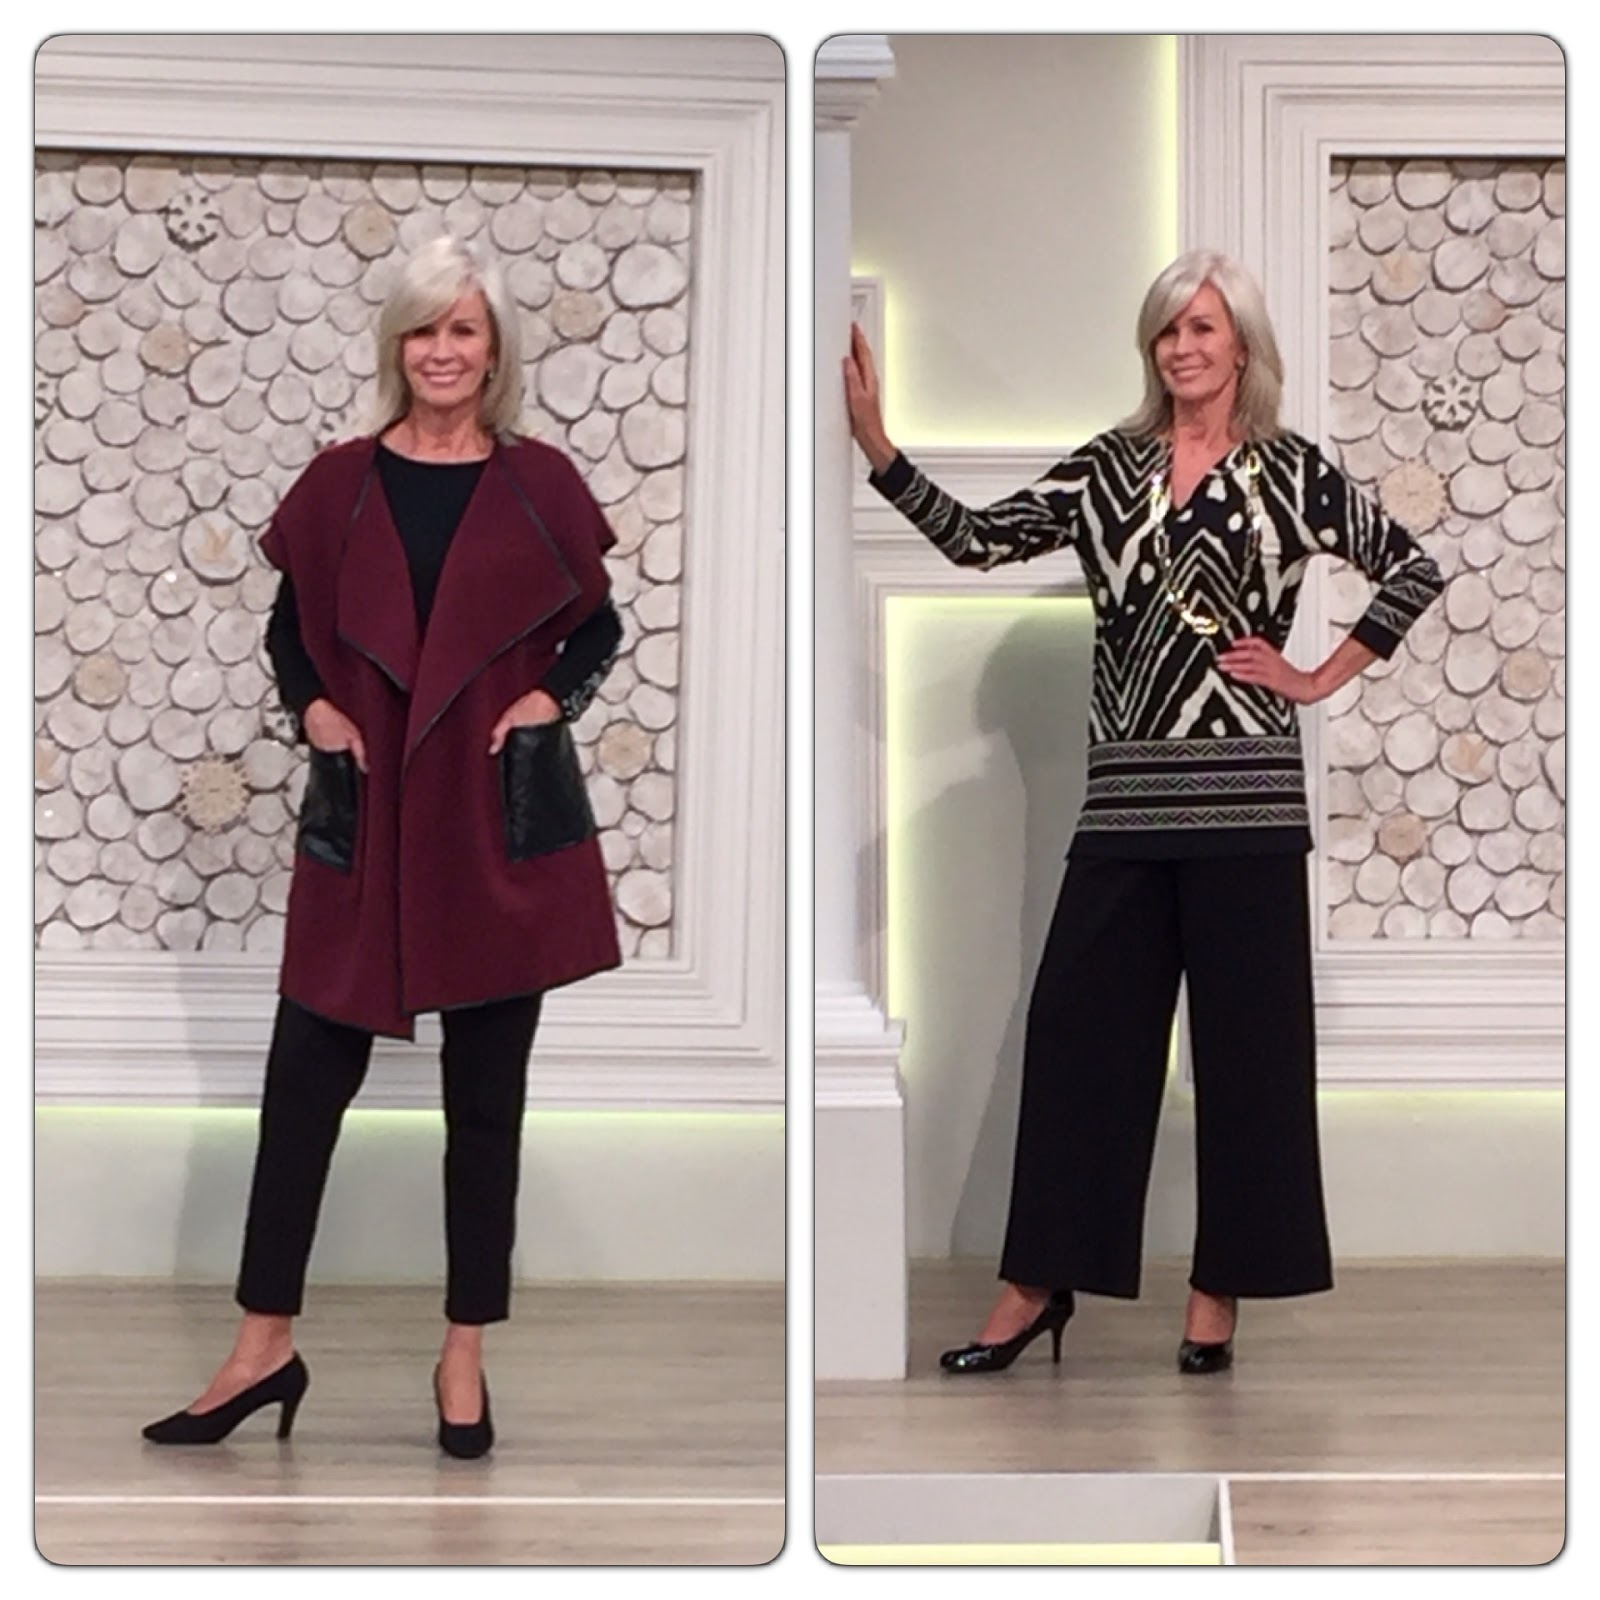 Nv nick verreosemiere on qvc uk lots of photos nick verreos model wearing nv nick verreos felt with faux leather trim poncho vest coat sequin trimmed sweater tuxedo ponte with faux leather outseam band pants ccuart Gallery